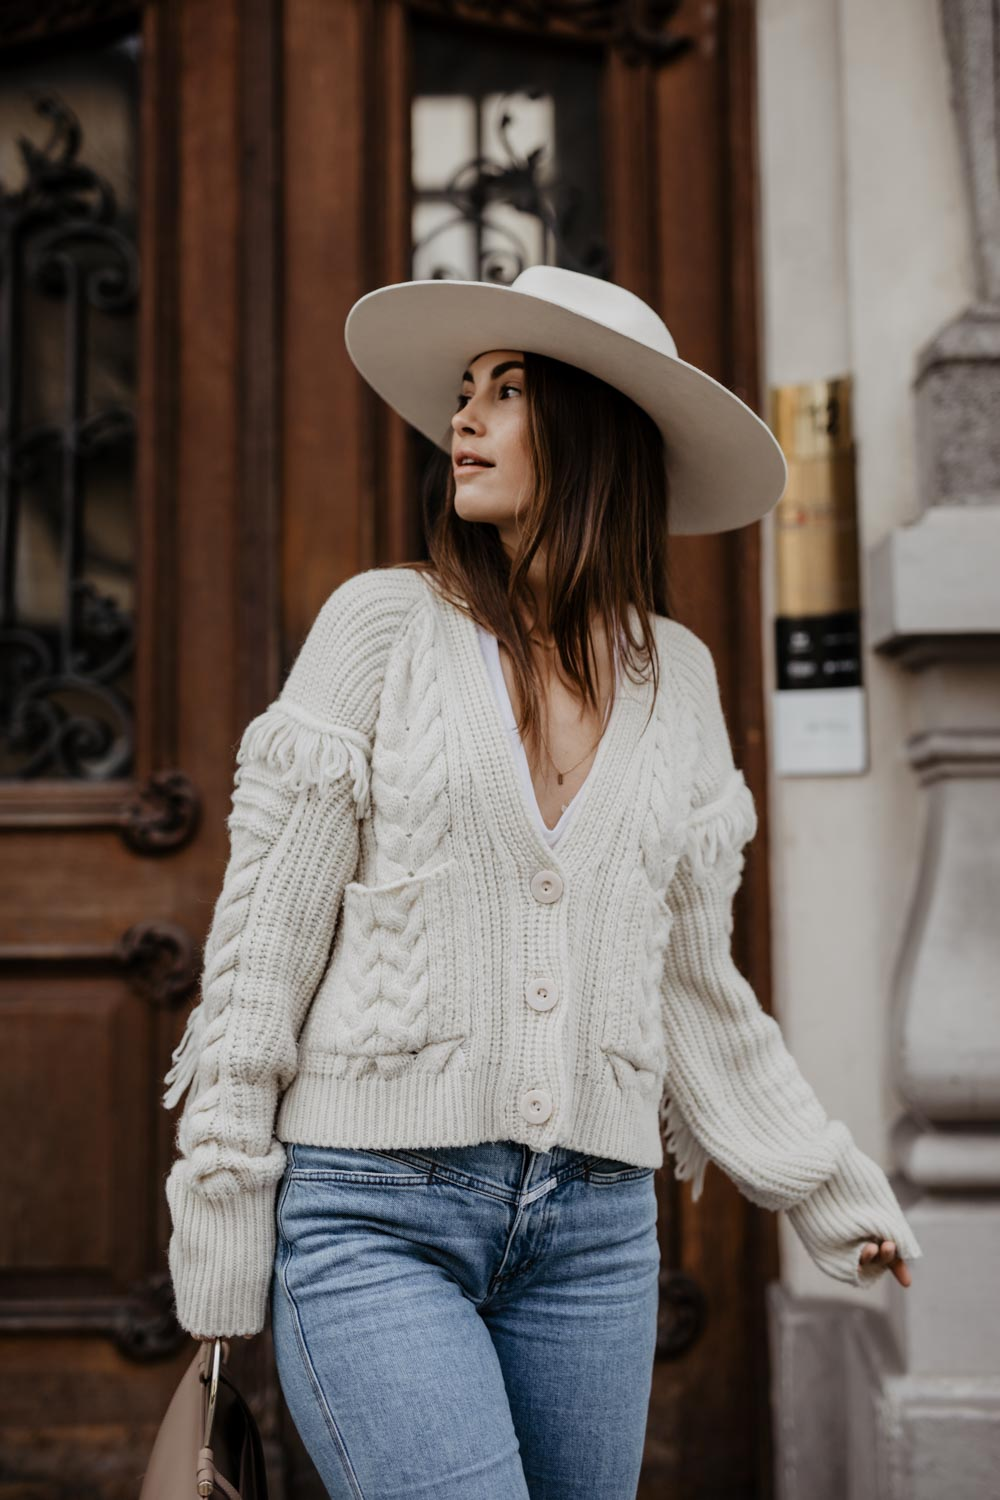 Outfit: J'adore - Closed Jeans, Lack Of Color Hat, Isabel Marant Nowles Boots, Edited Sweater, Aigner Lexi Bag | You rock my life - ninawro